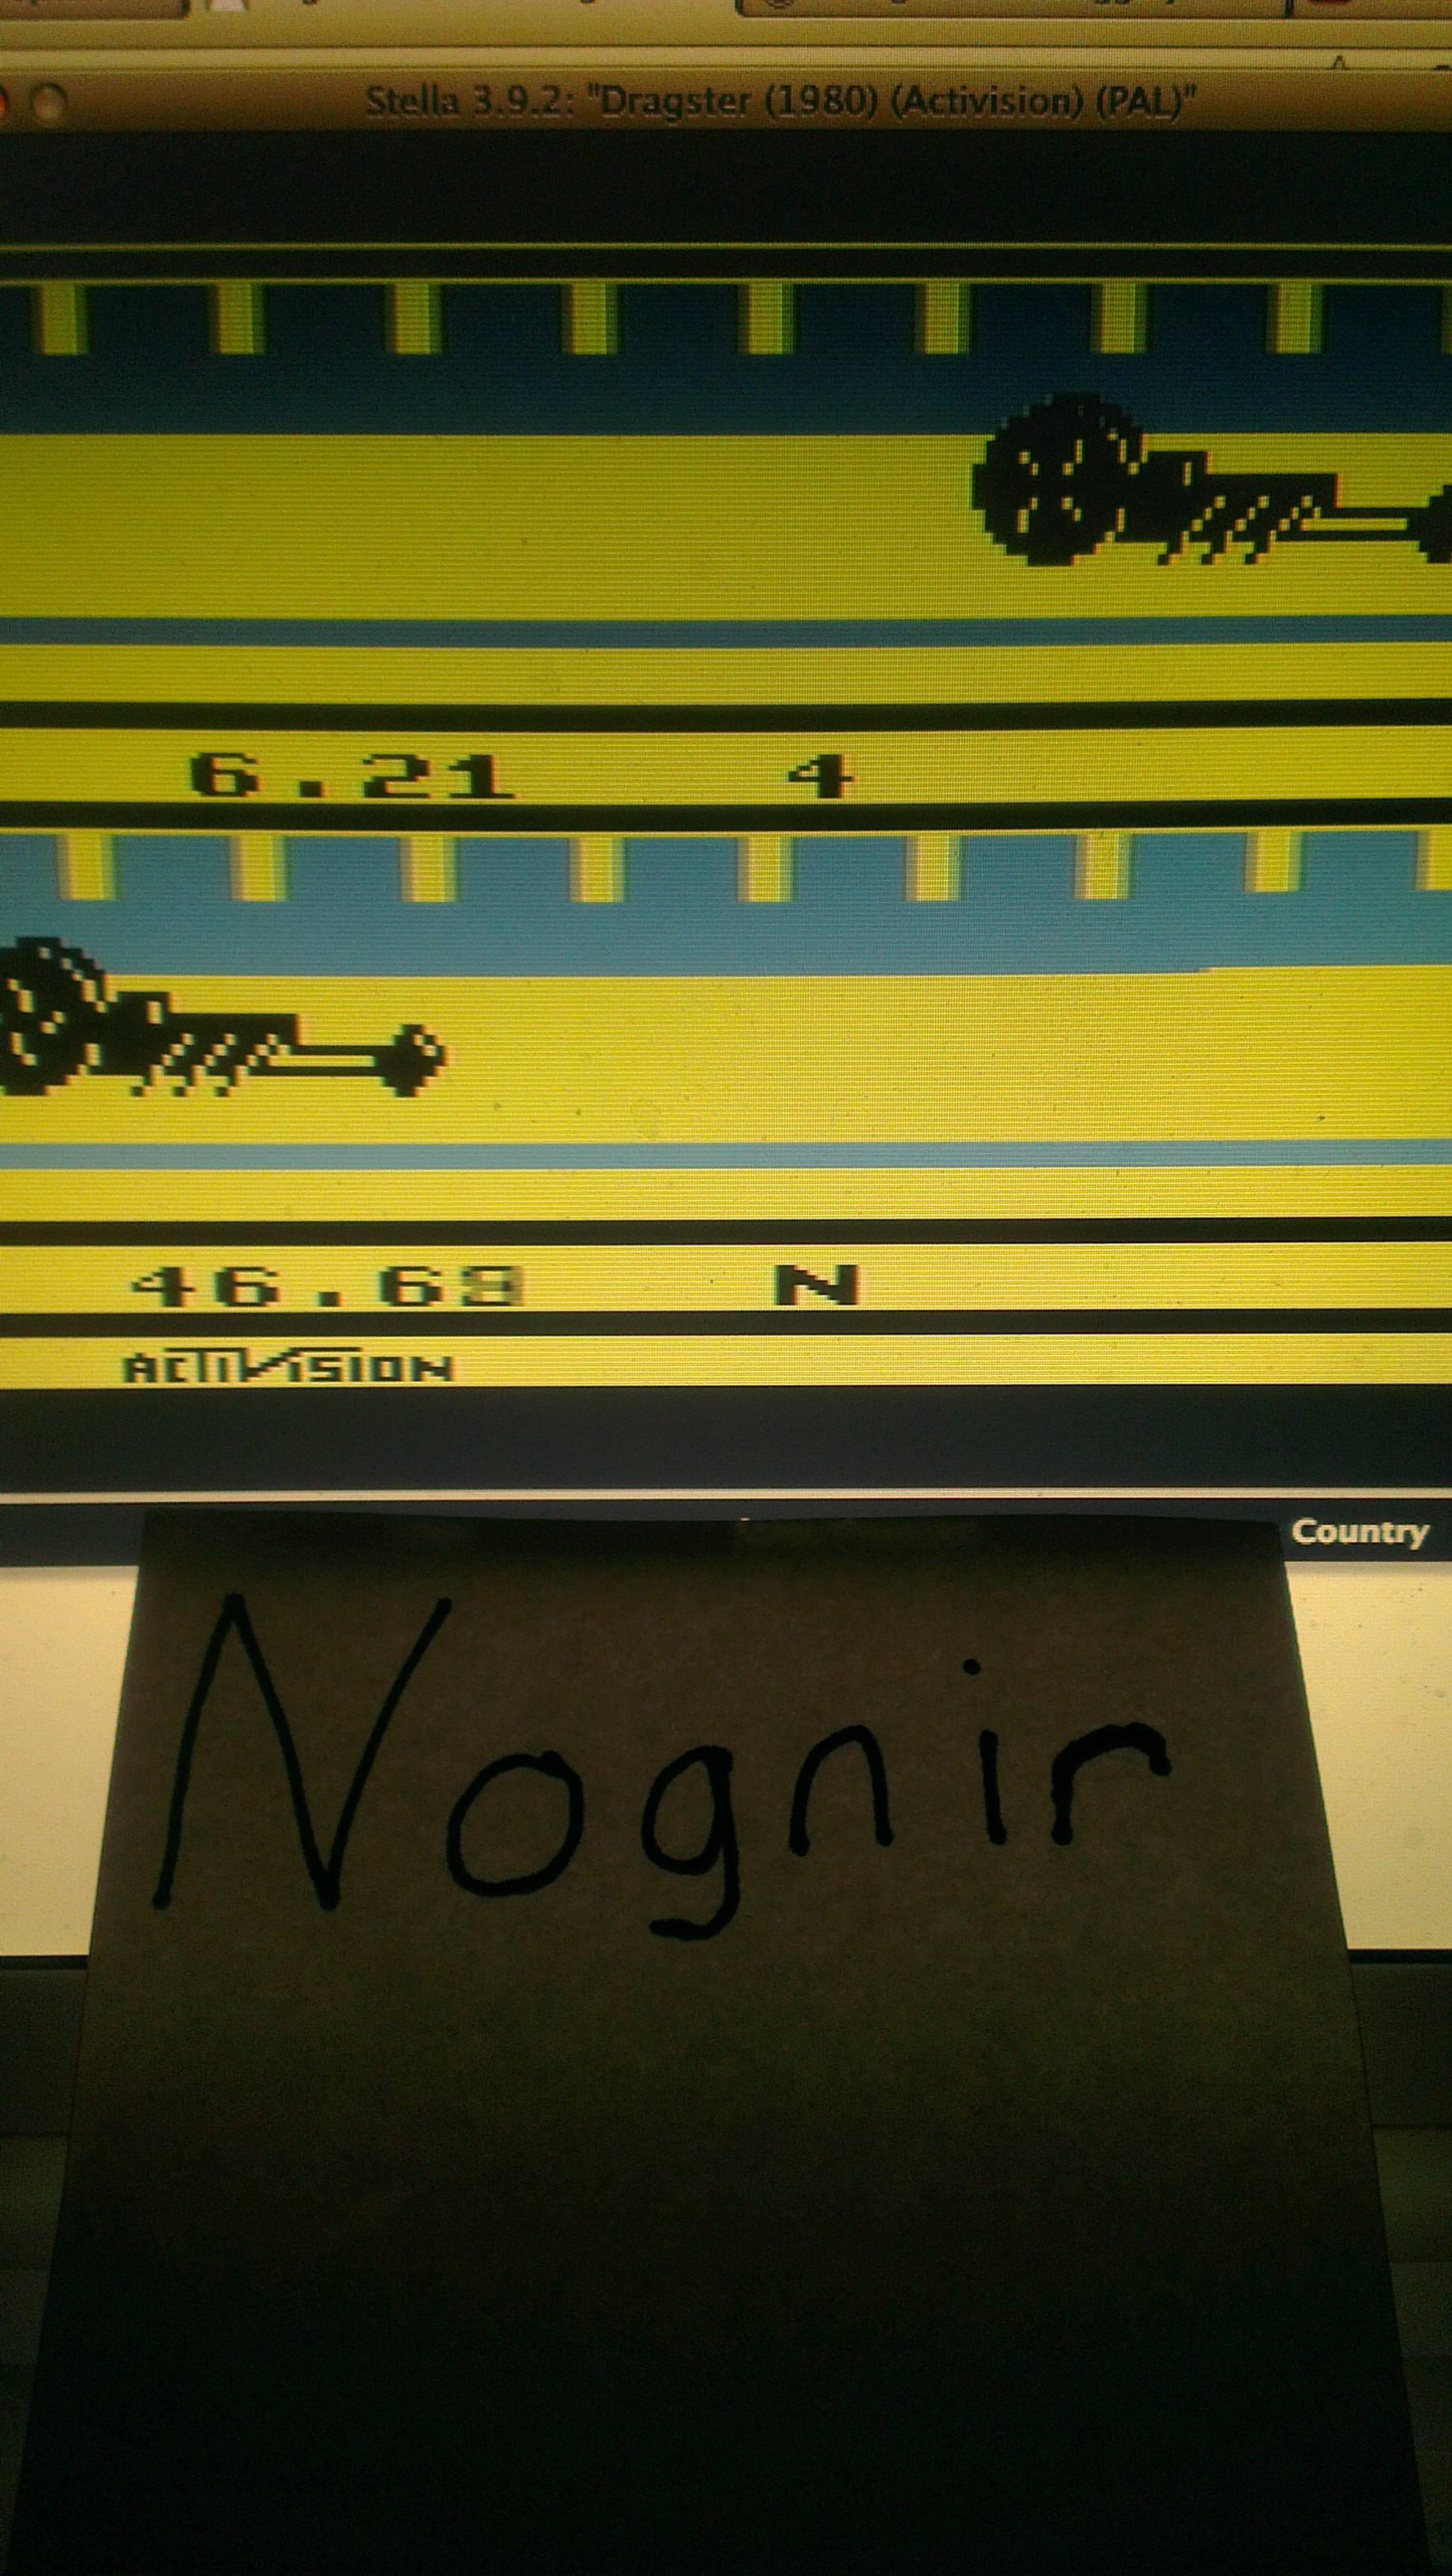 Dragster time of 0:00:06.21